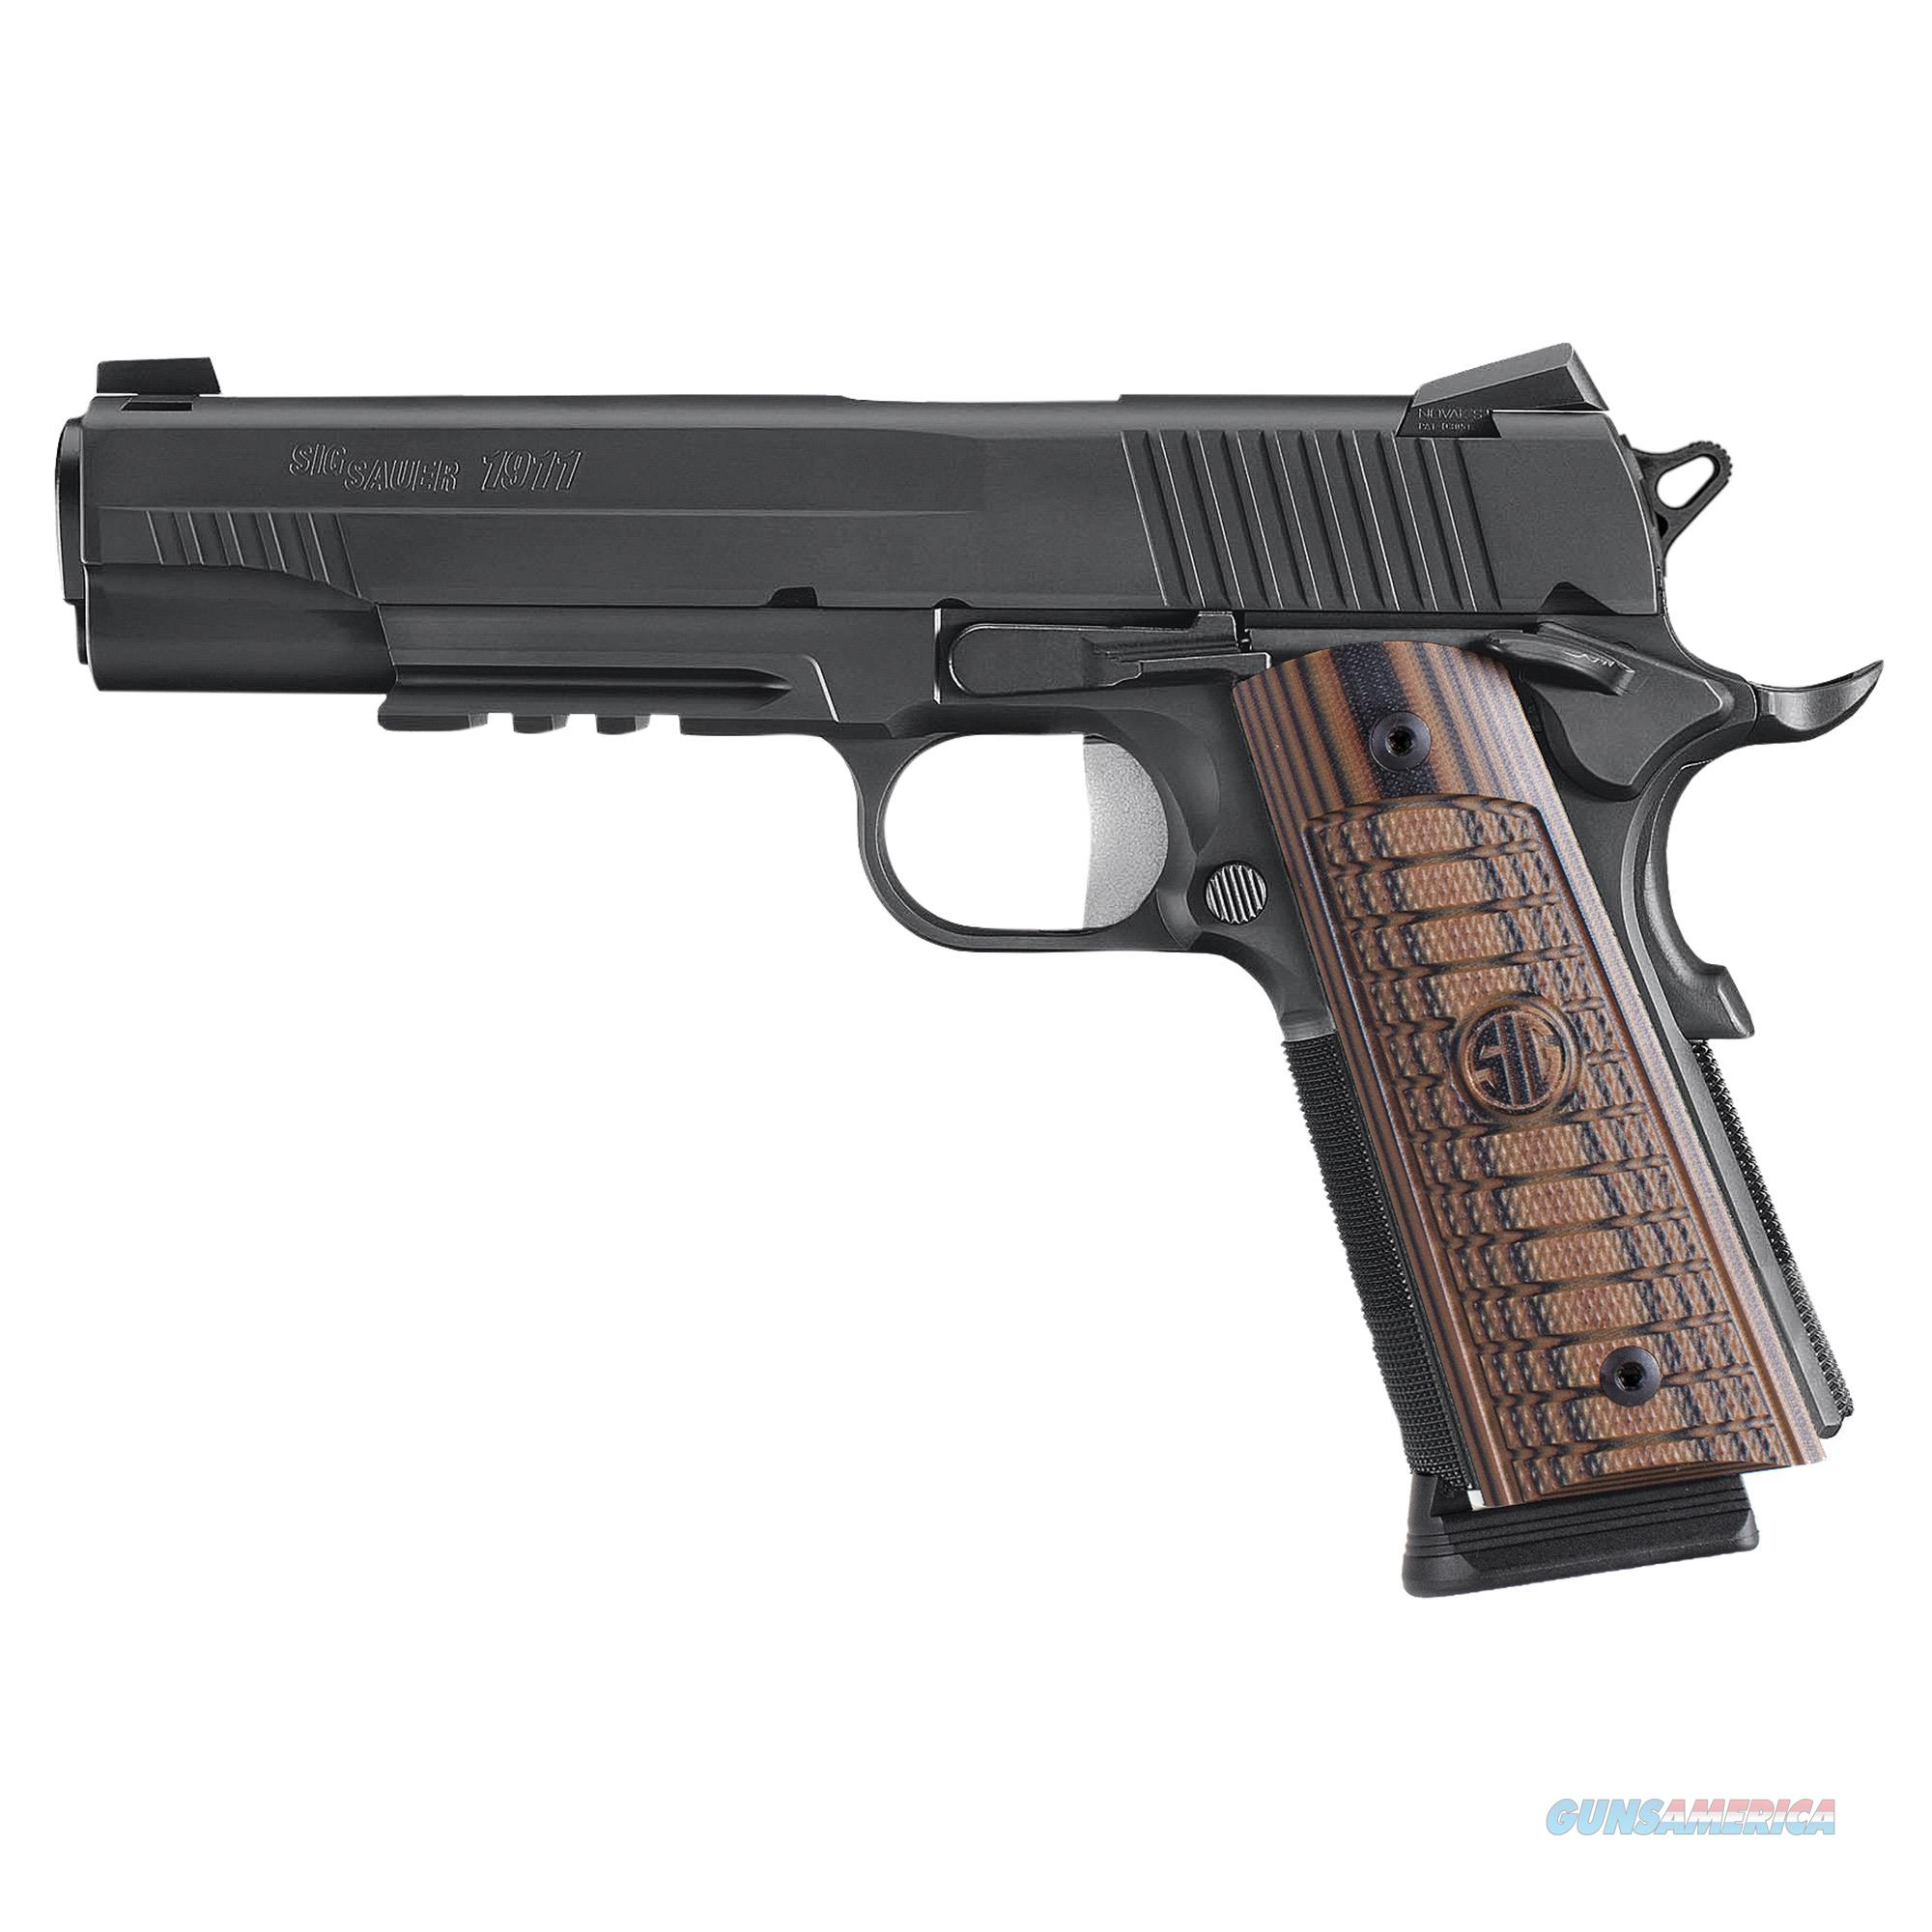 "Sig Sauer 1911 Select .45 ACP 5"" 8+1, Siglite Night Sights - New in Case  Guns > Pistols > Sig - Sauer/Sigarms Pistols > 1911"